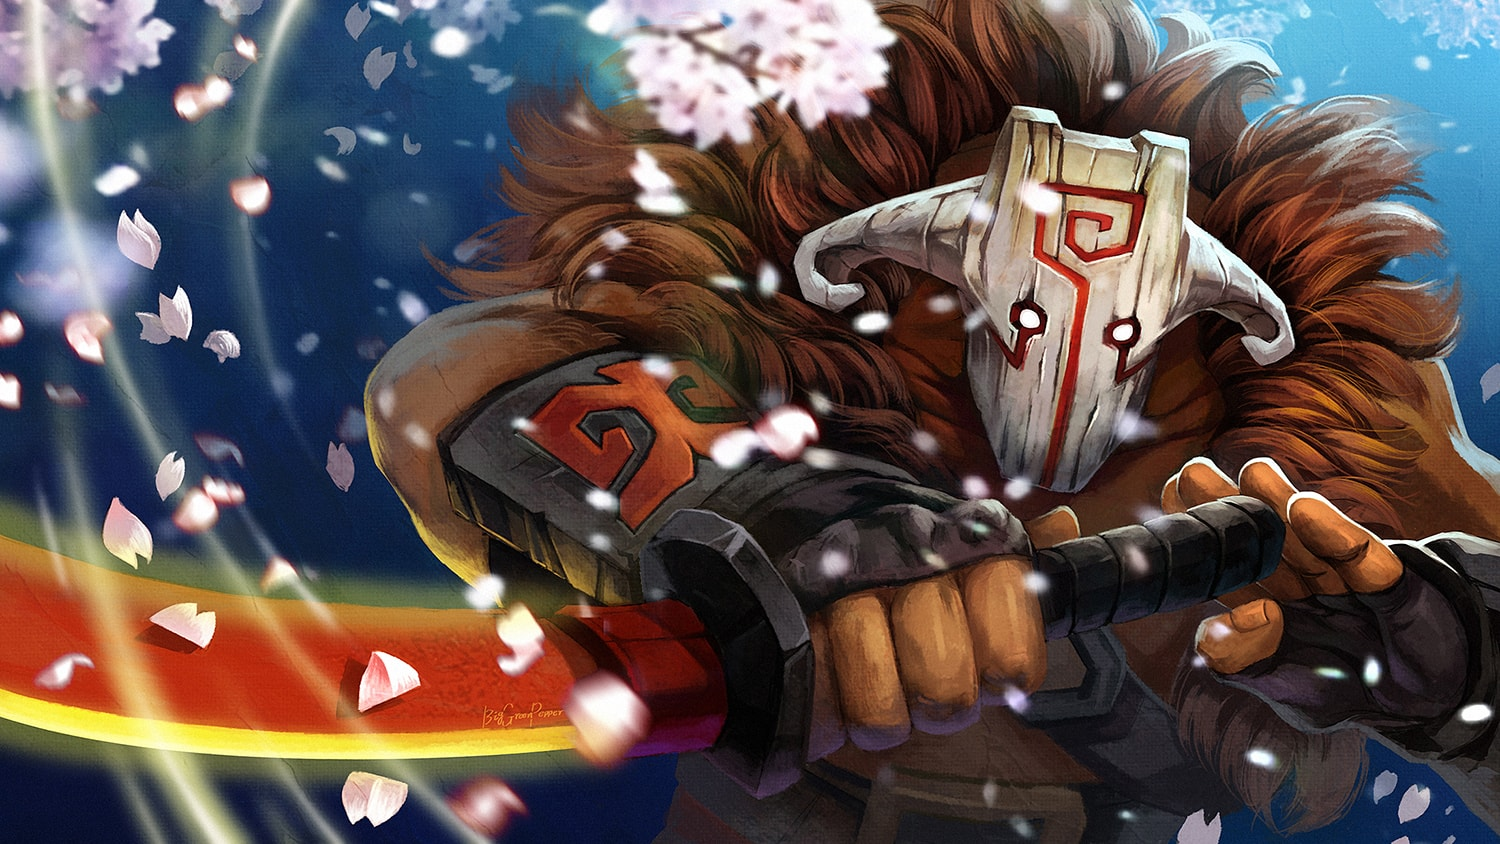 Dota2 : Juggernaut Wallpaper